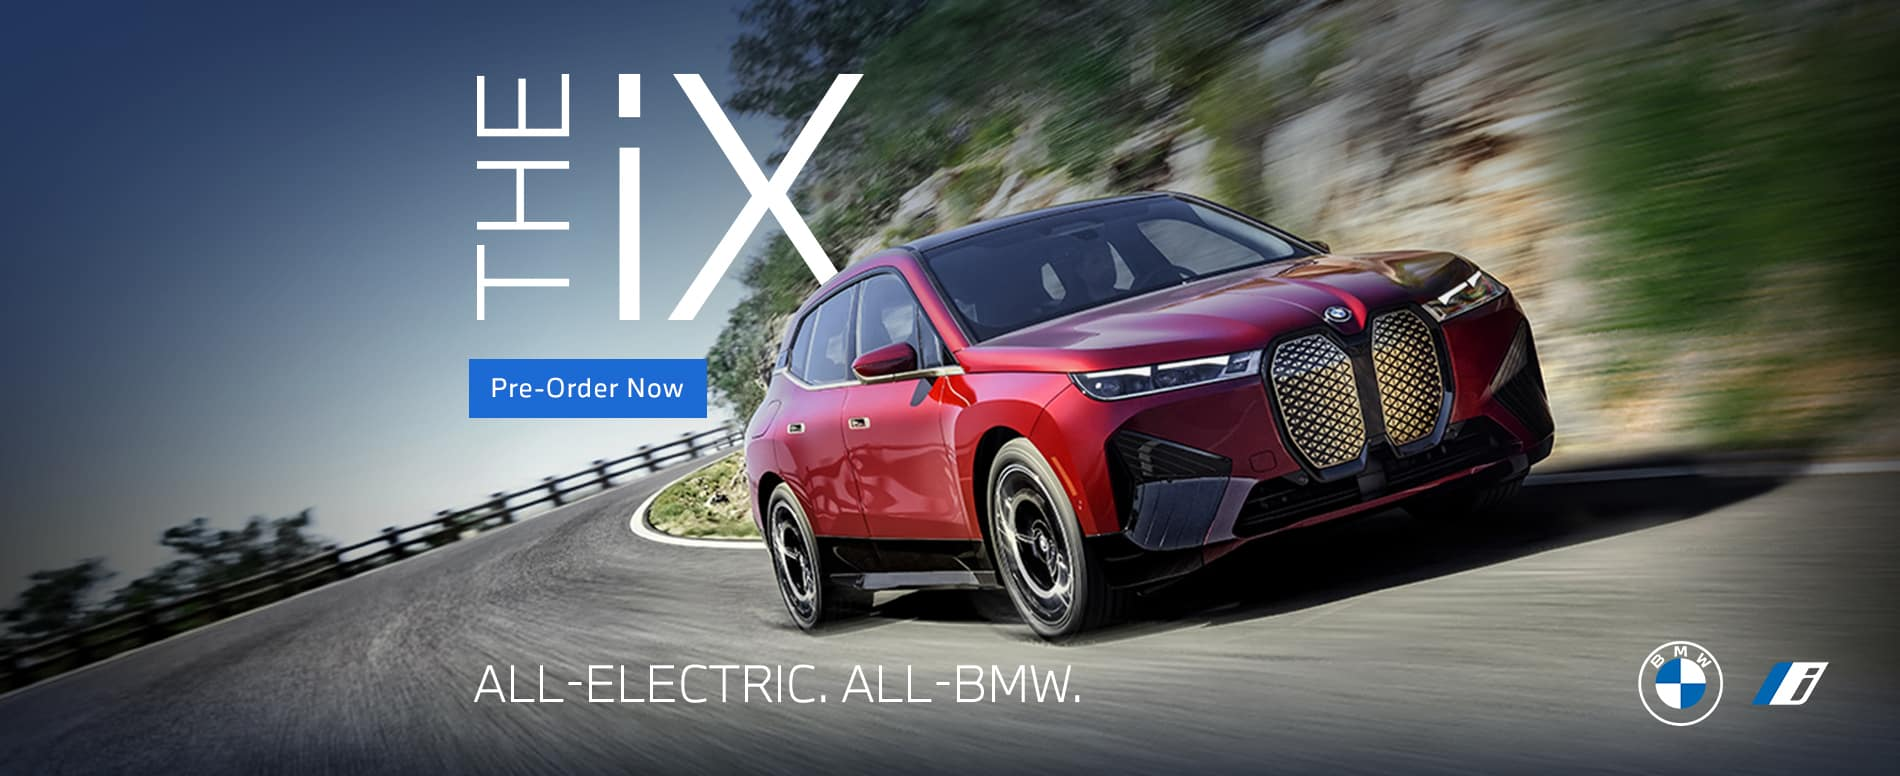 Pre-Order the All-New BMW iX Now